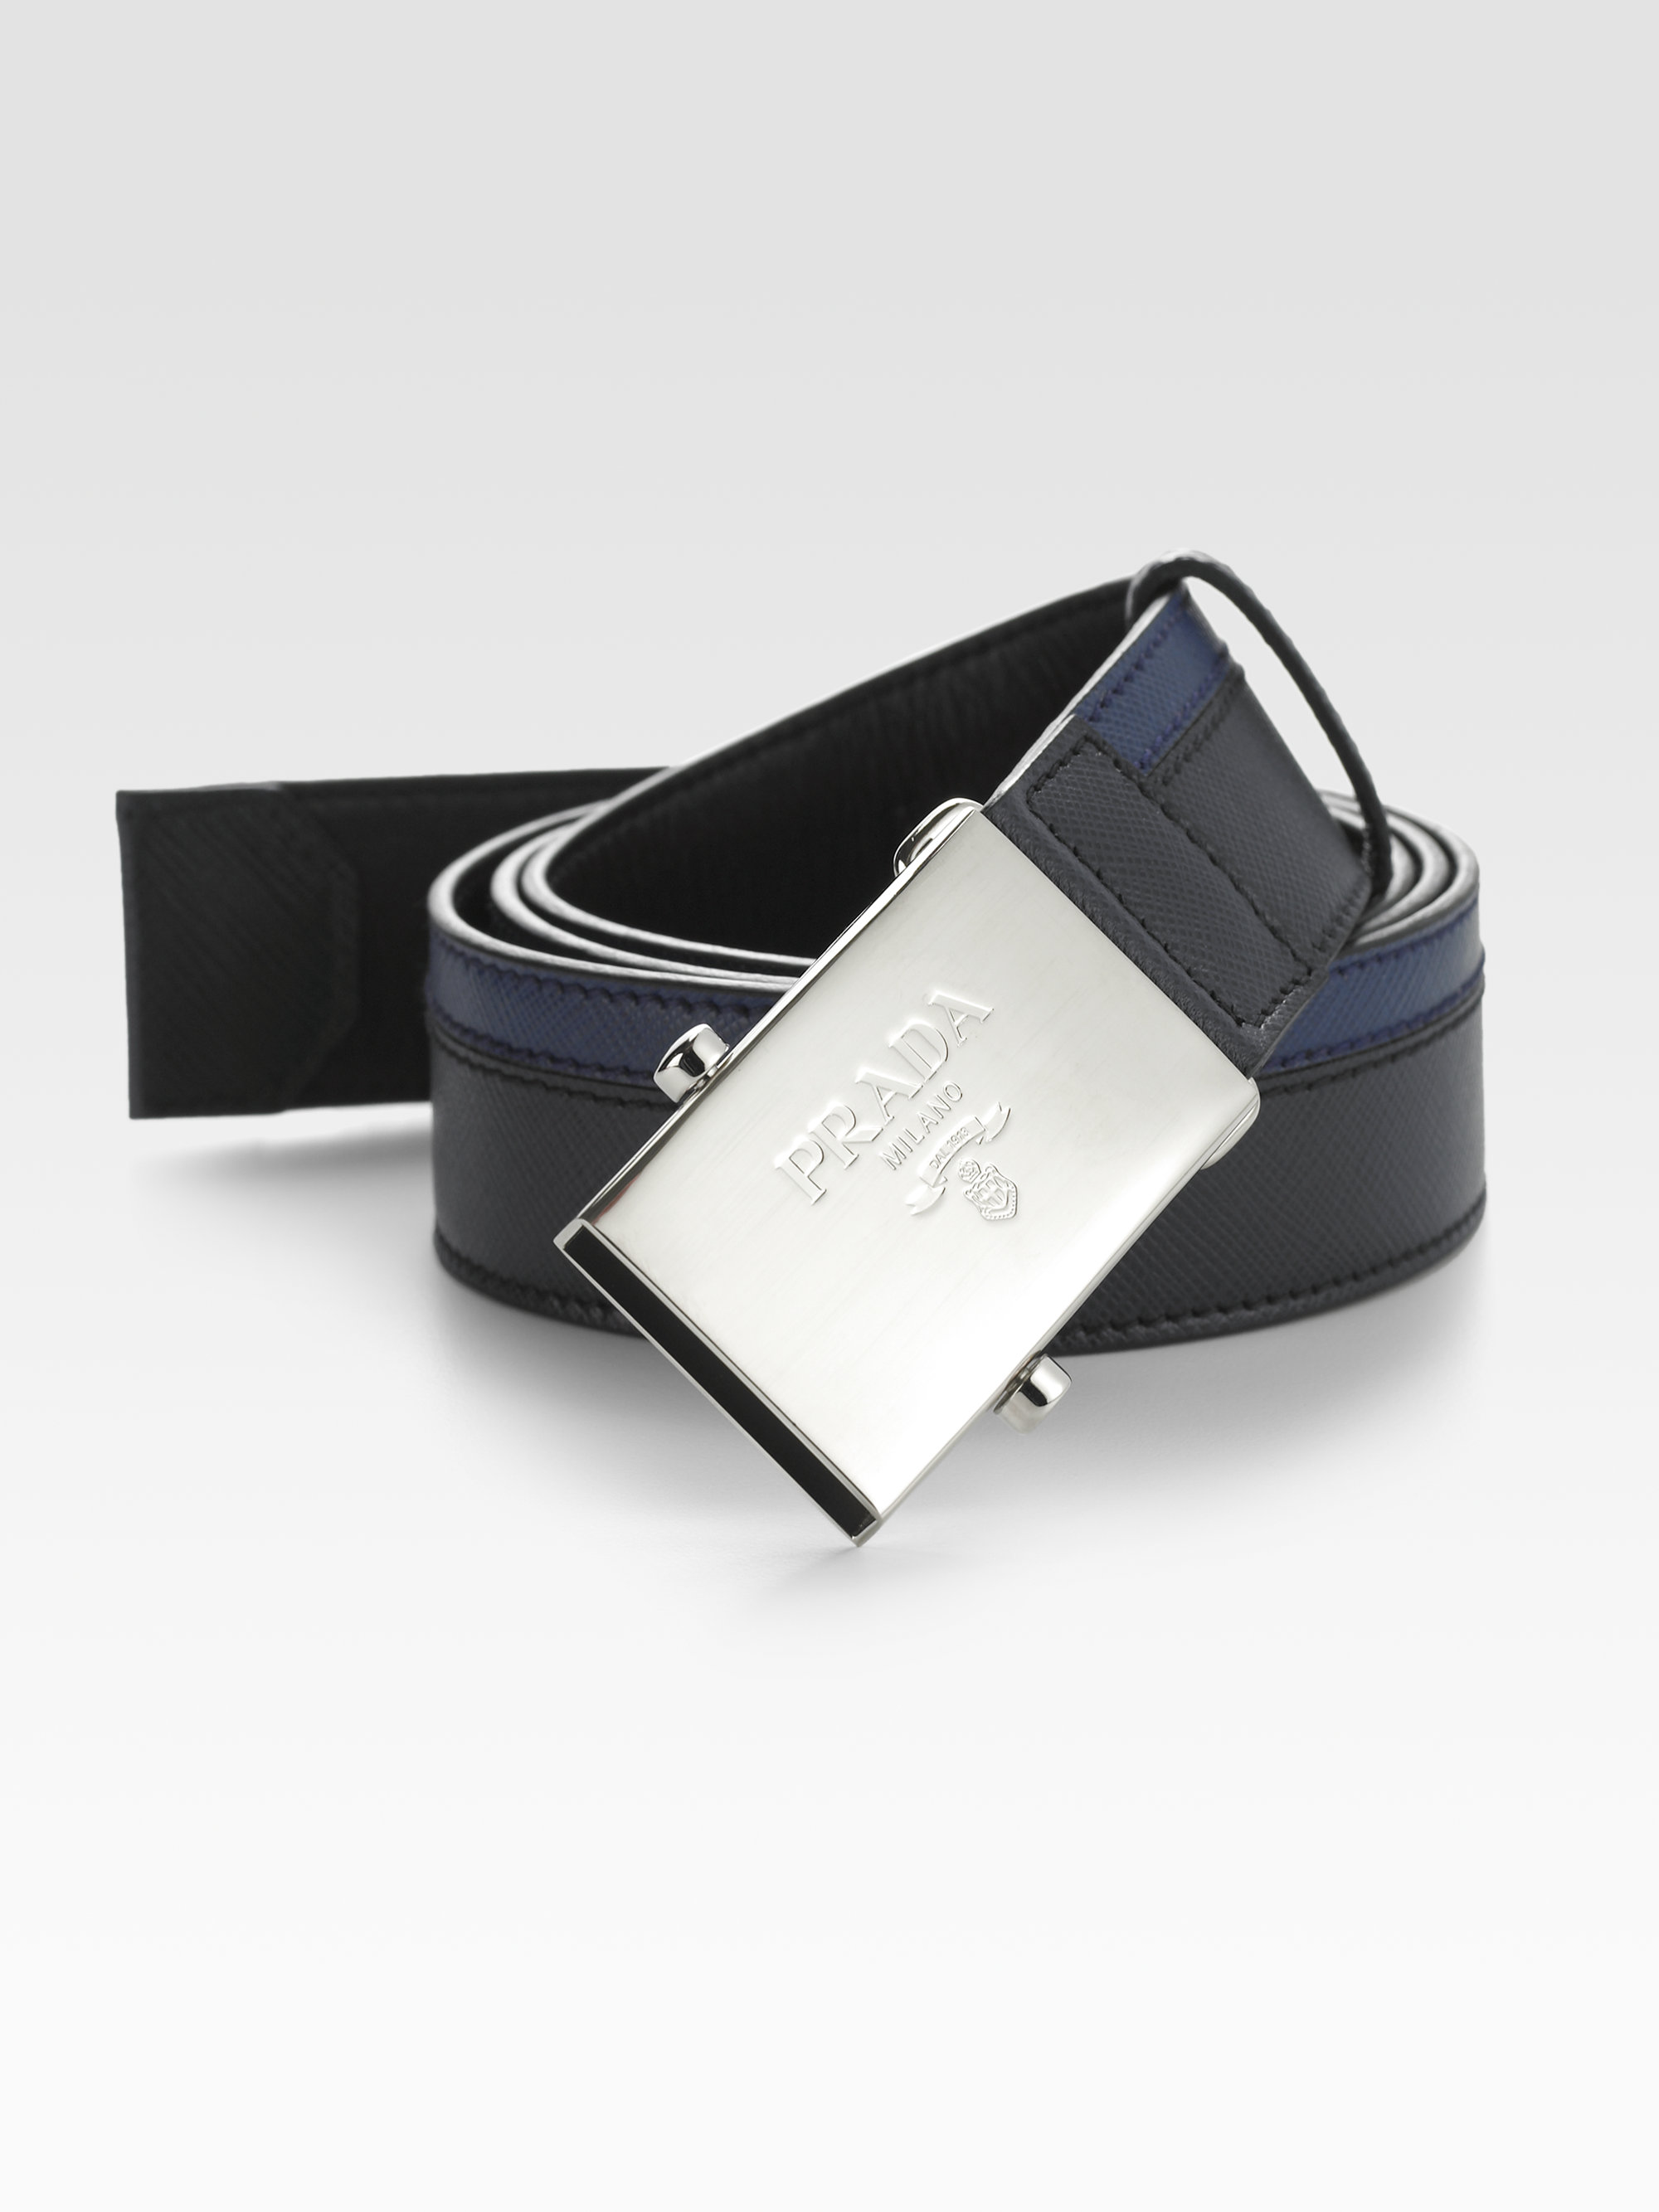 cb9dee03561e6 get lyst prada saffiano striped leather belt in blue for men 201cb a6950